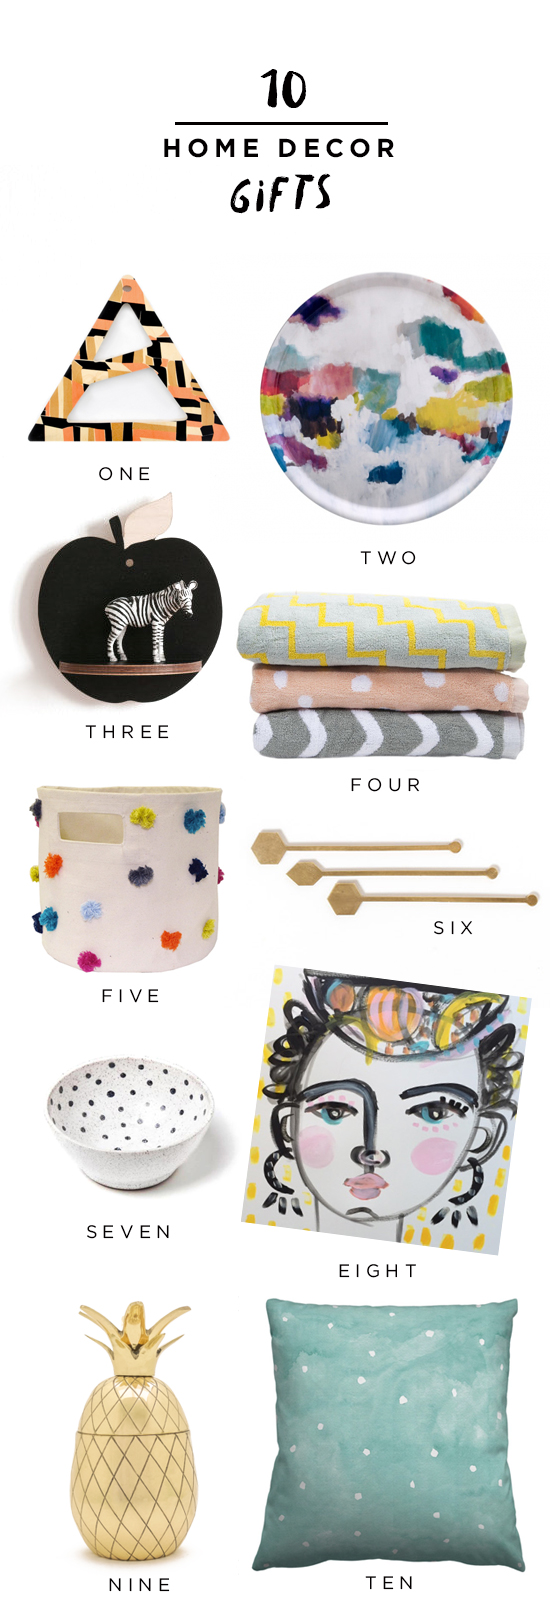 10 Home Decor Gifts!